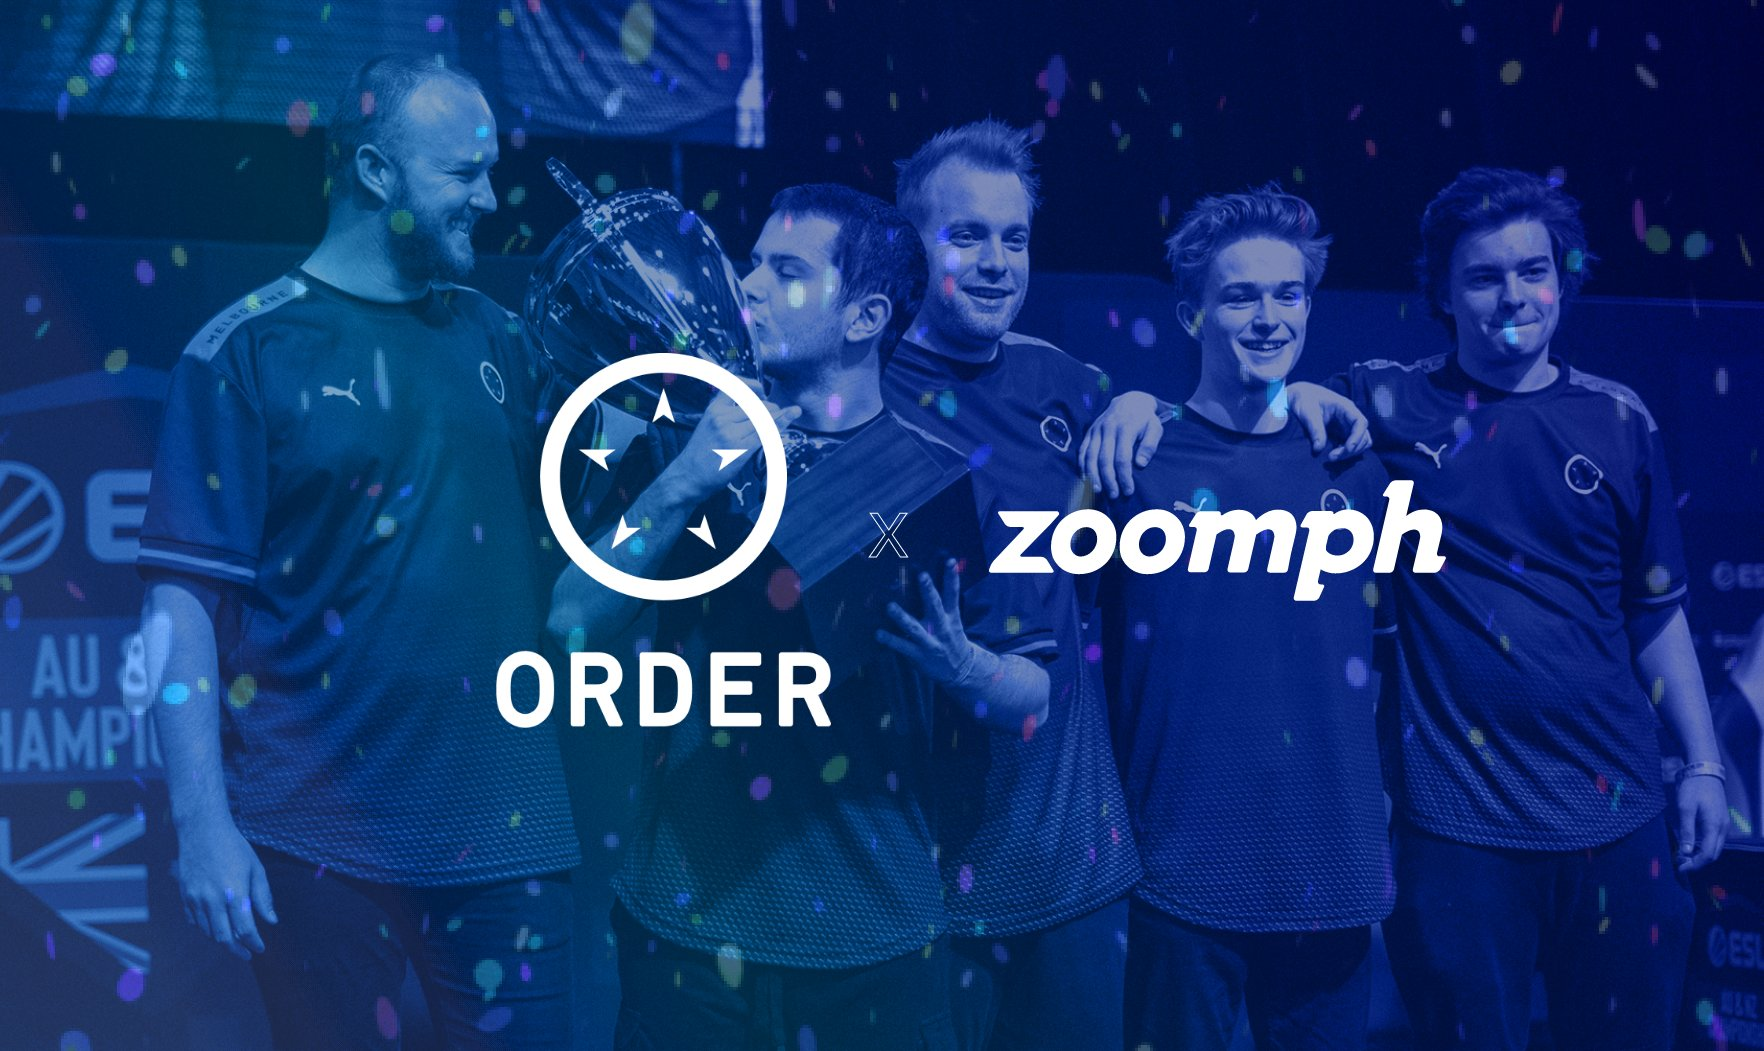 ORDER enters strategic partnership with Zoomph